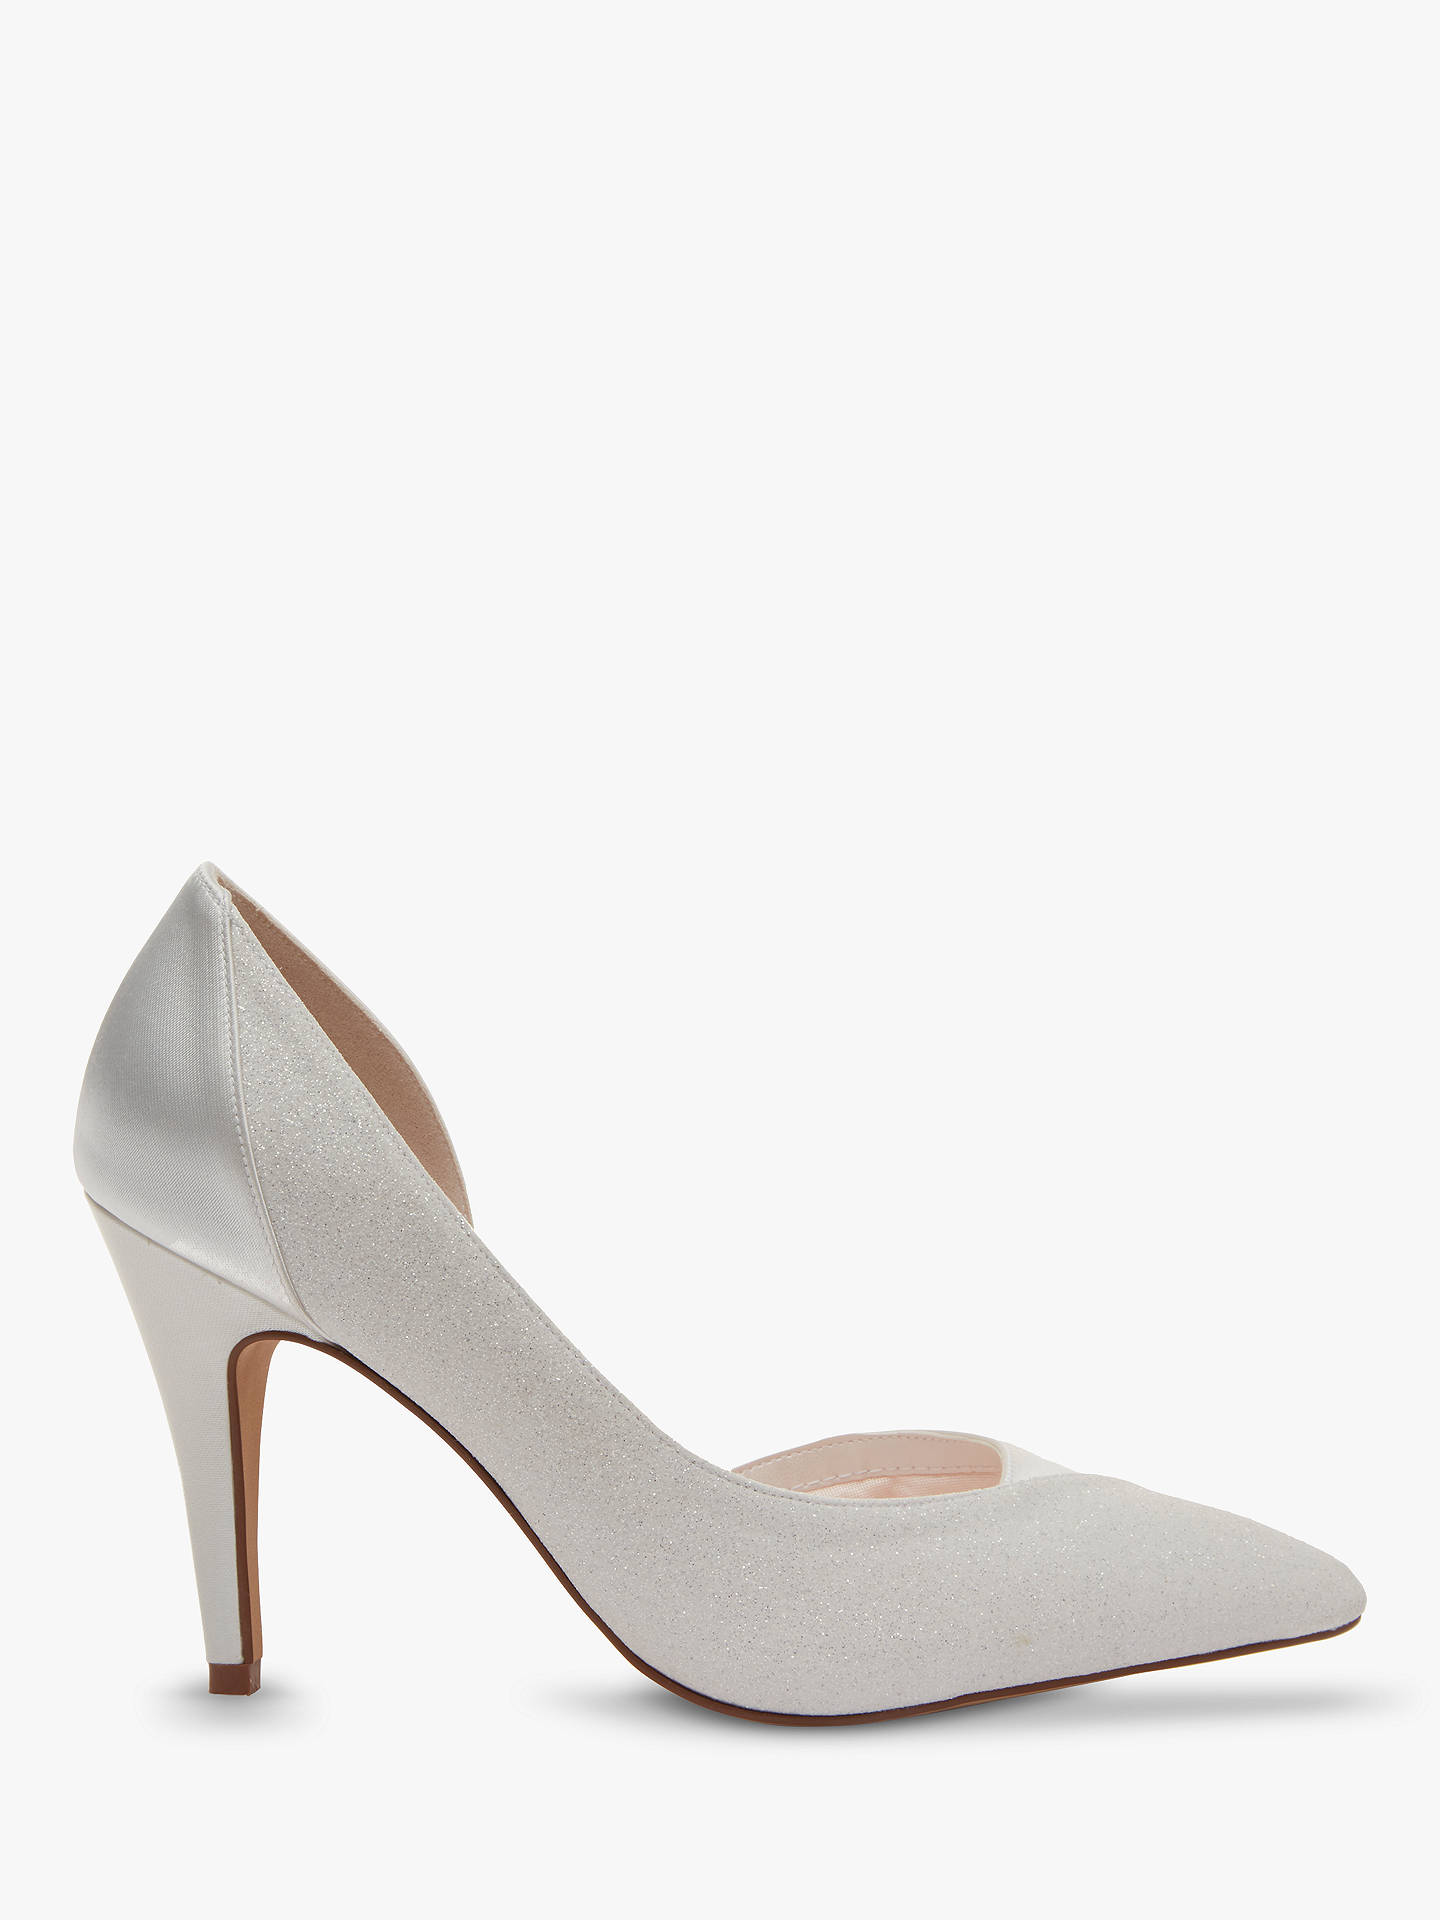 BuyRainbow Club Roux Pointed Toe Court Shoes, Ivory, 3 Online at johnlewis.com